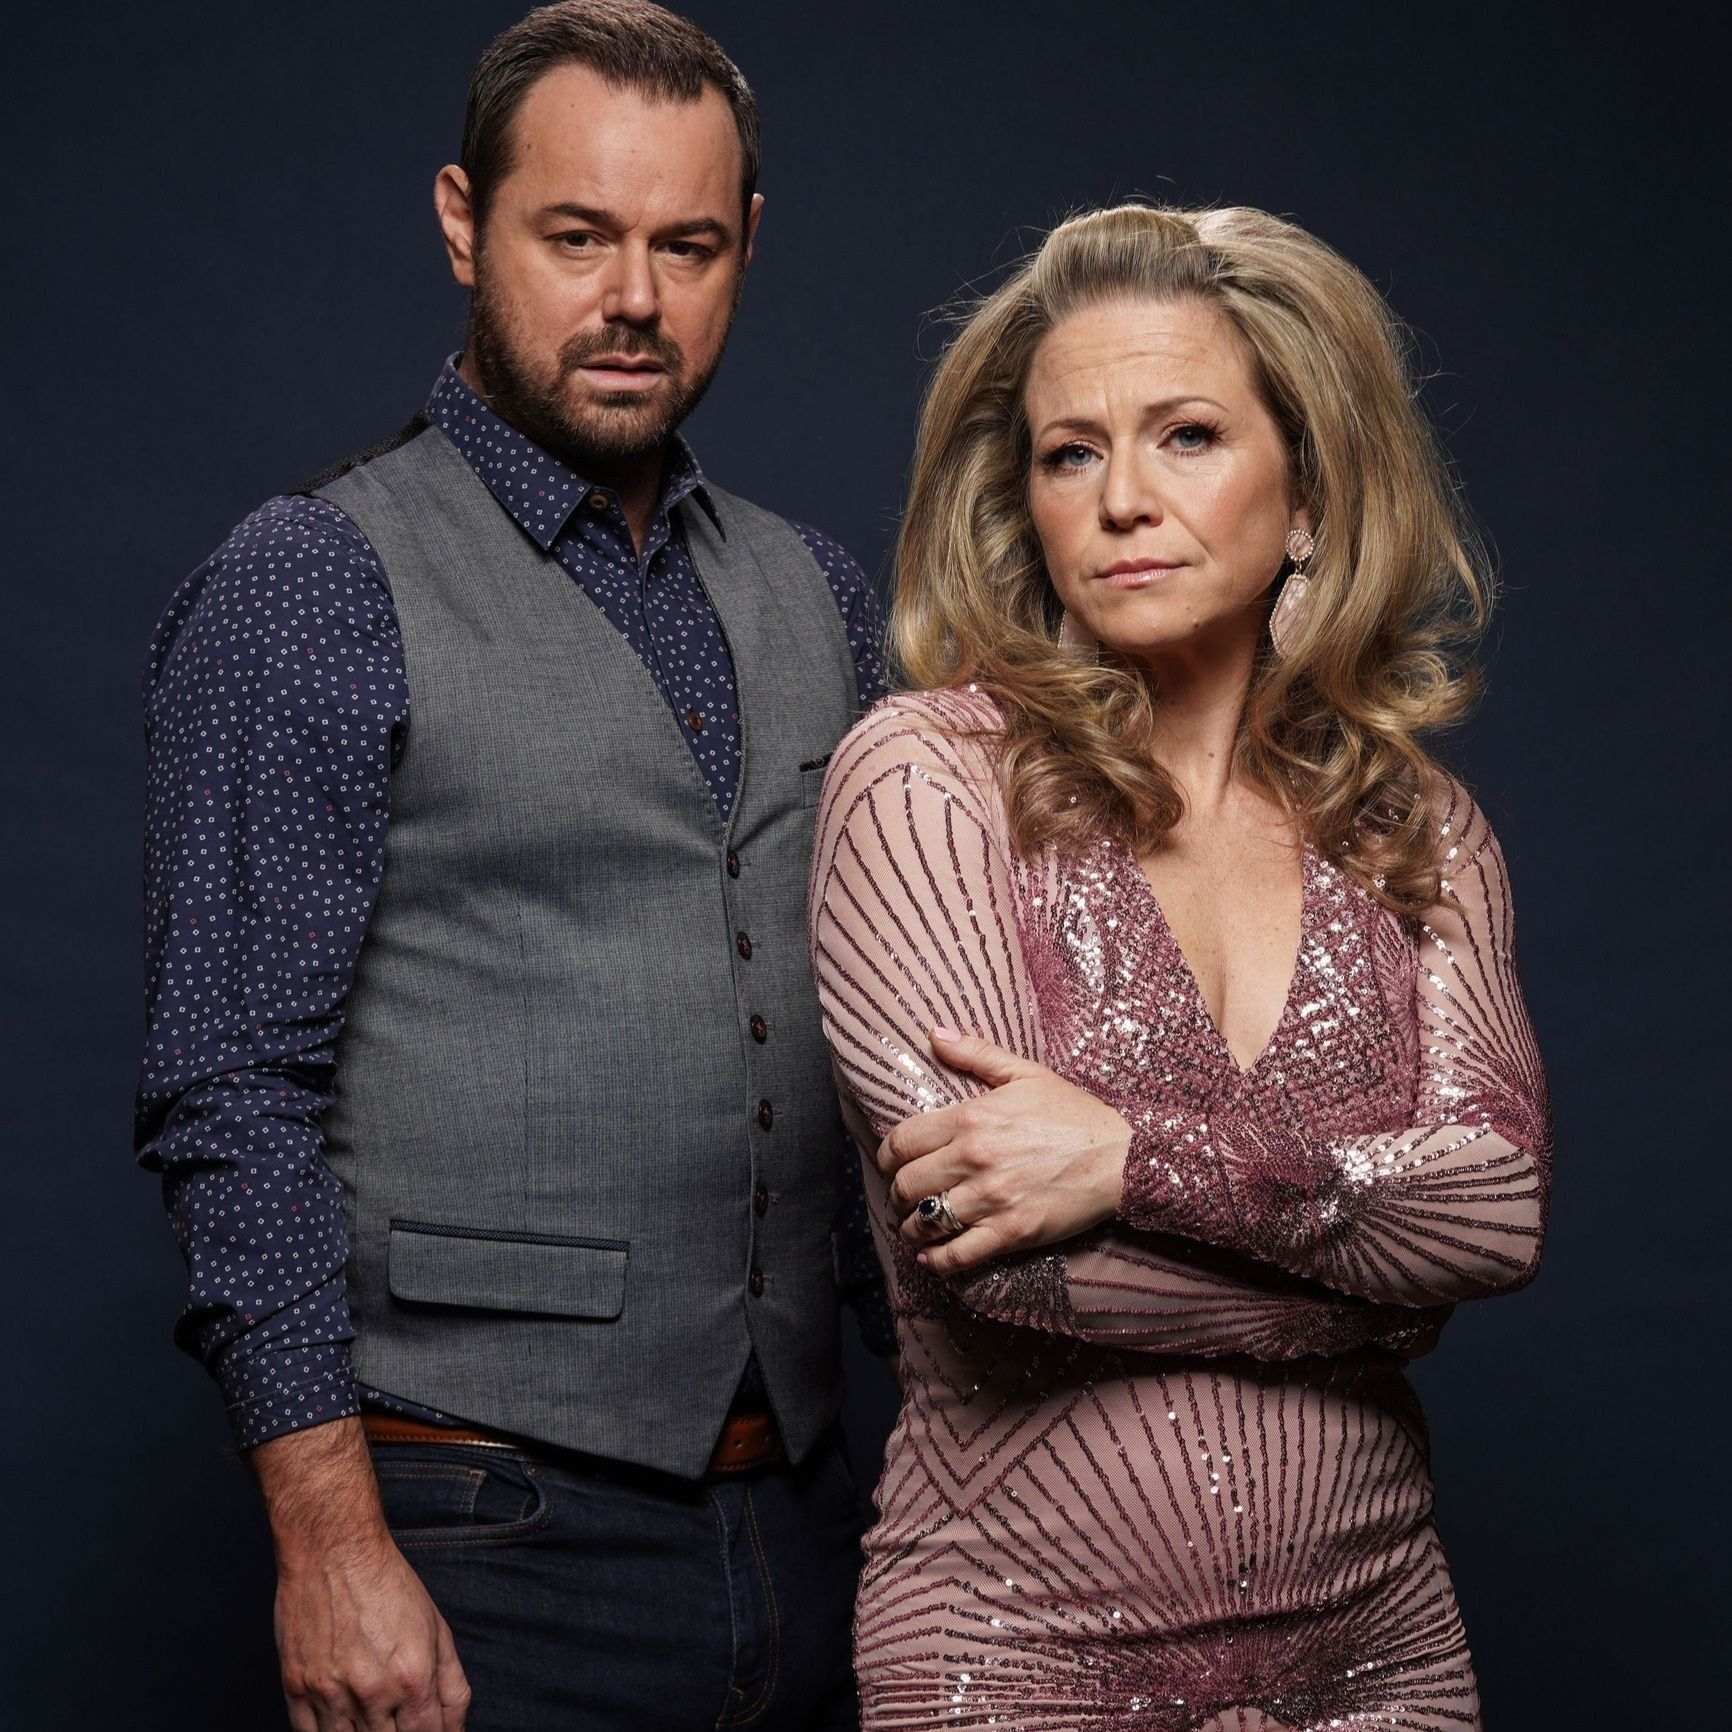 EastEnders' Mick Carter has Christmas Day panic attack as Linda goes AWOL